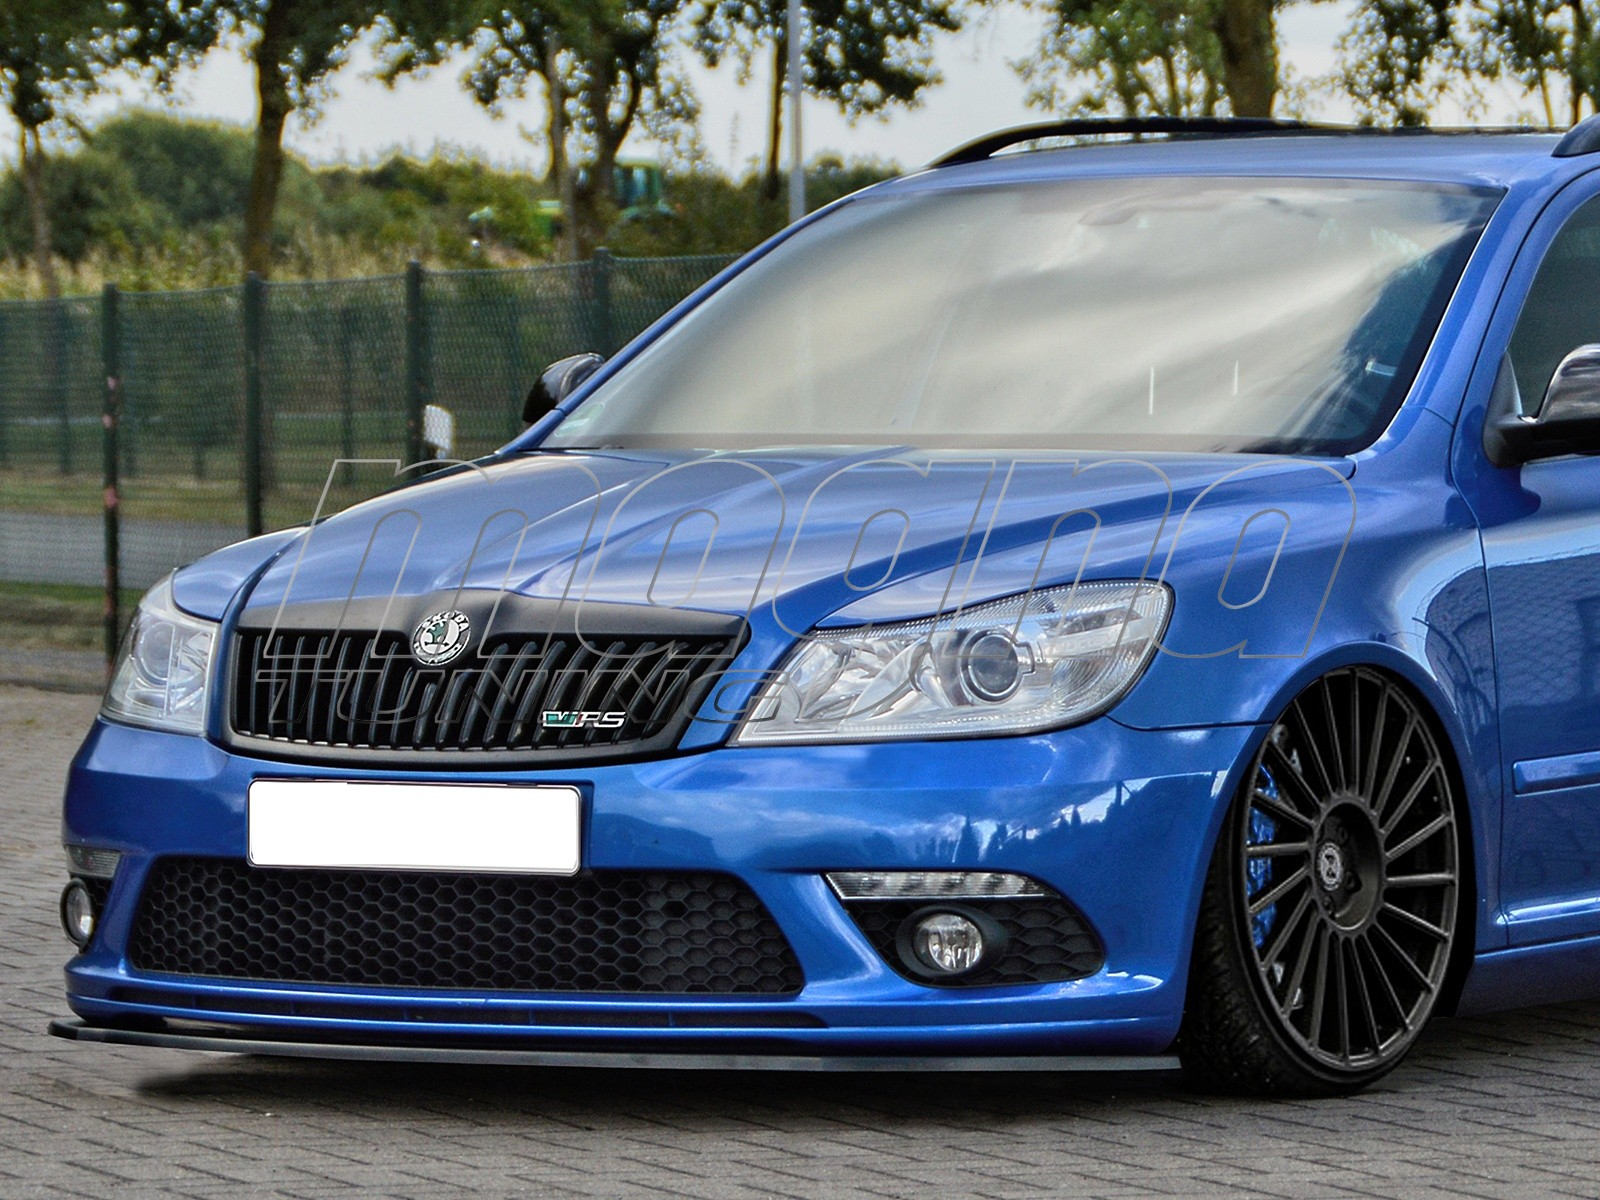 8E Limousine GT Body Kit also Rockford Fosgate P1s4 10 Punch 10inch Sub together with VW Golf 7 GTI MX Front Bumper Extension likewise Ford Mondeo MK4 Facelift S2 Body Kit furthermore Ford Fiesta Mk7 Facelift Rs Look Body Kit. on alpine amplifiers